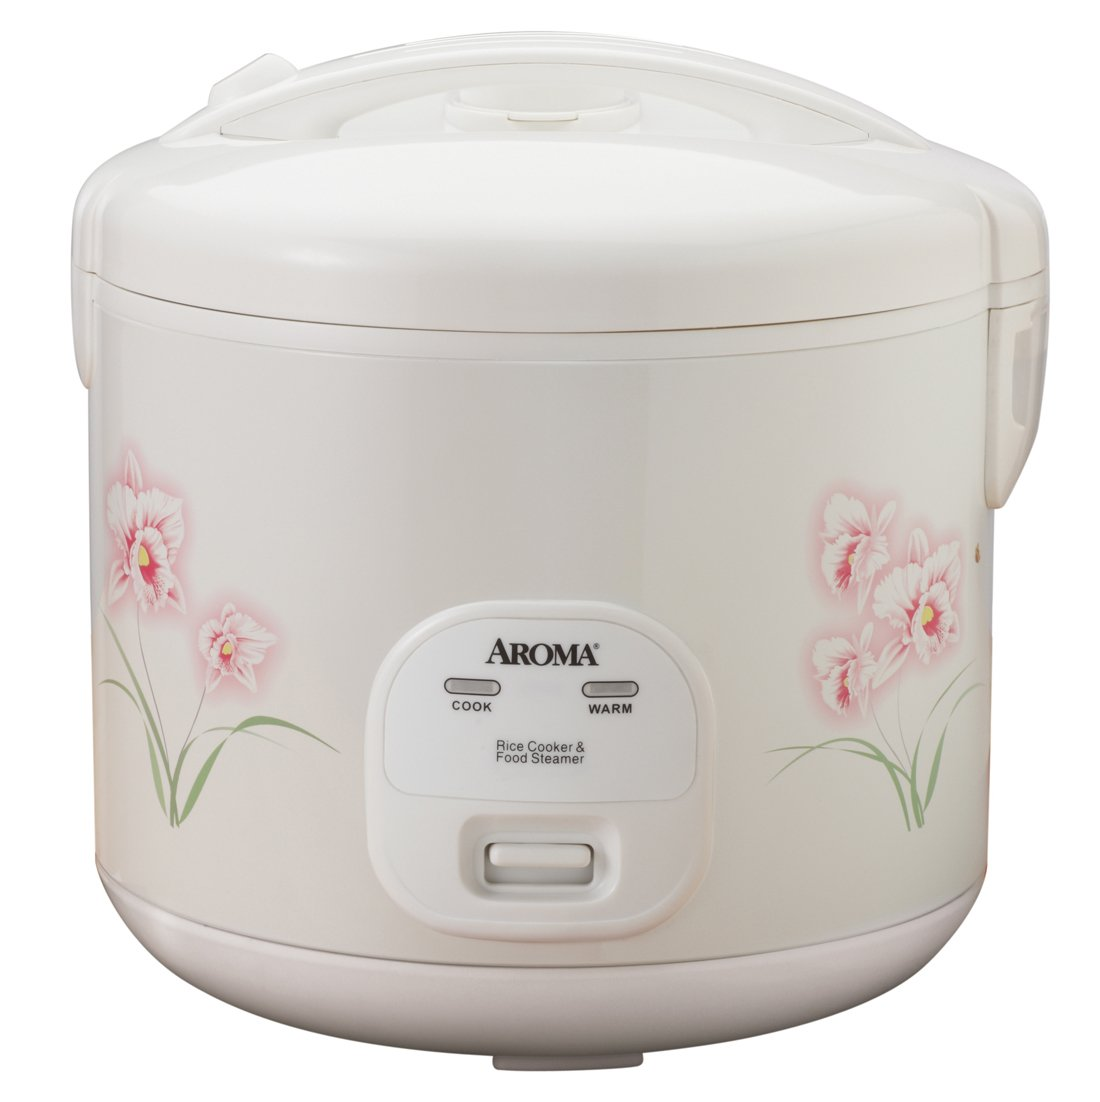 Aroma ARC-1266F 12-Cup Cooked Rice Cooker and Food Steamer